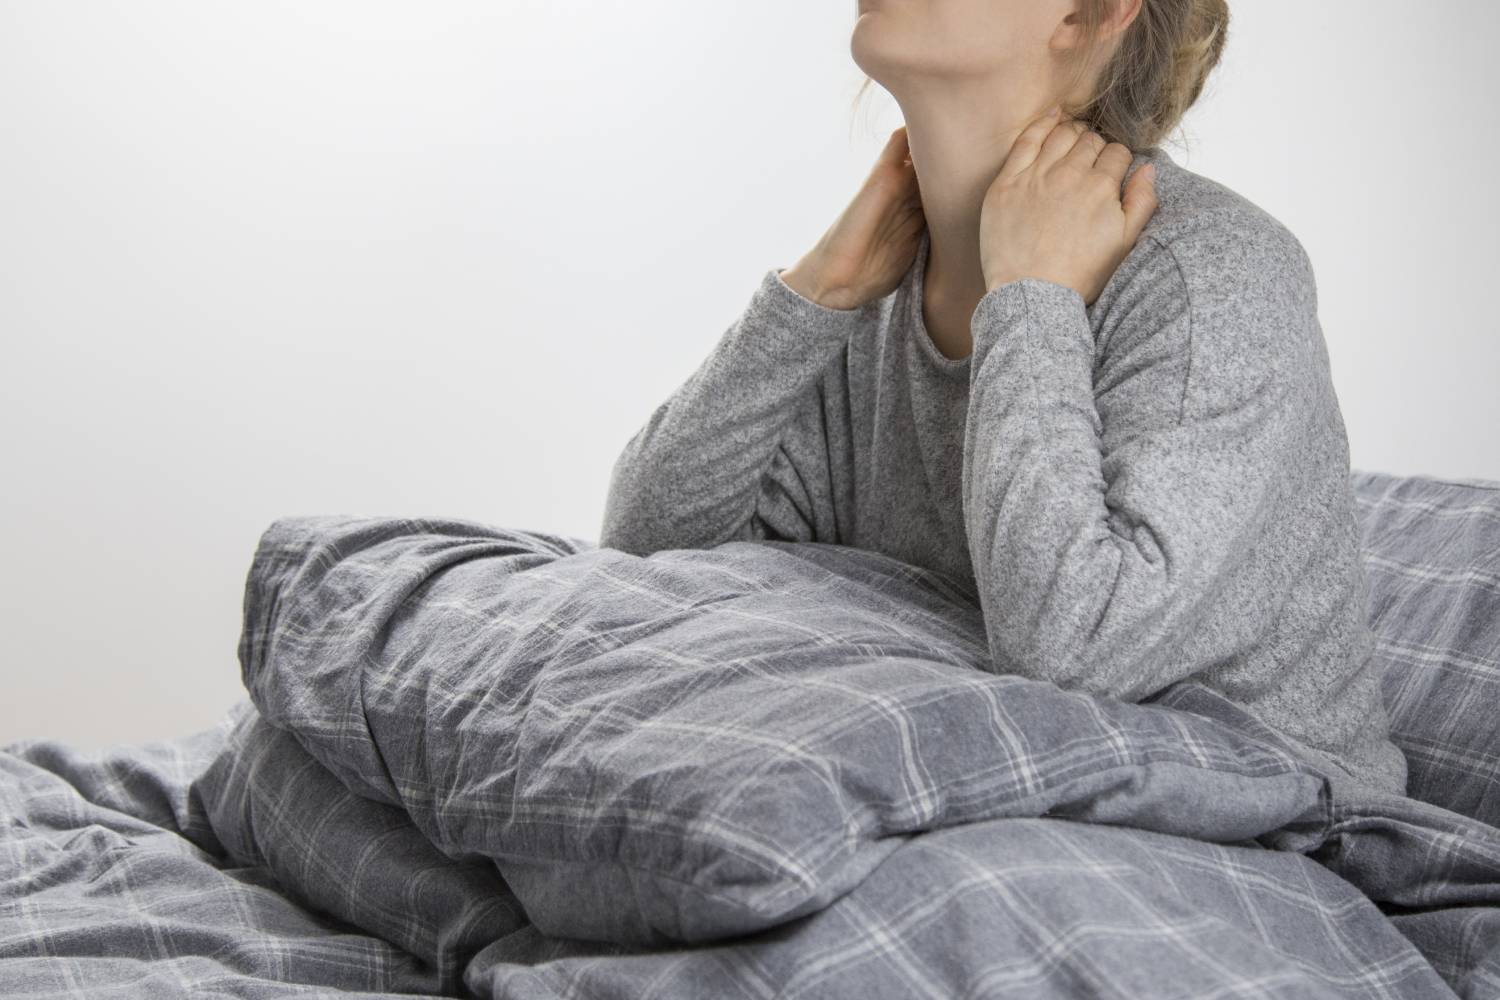 6 damage caused by air conditioning to health